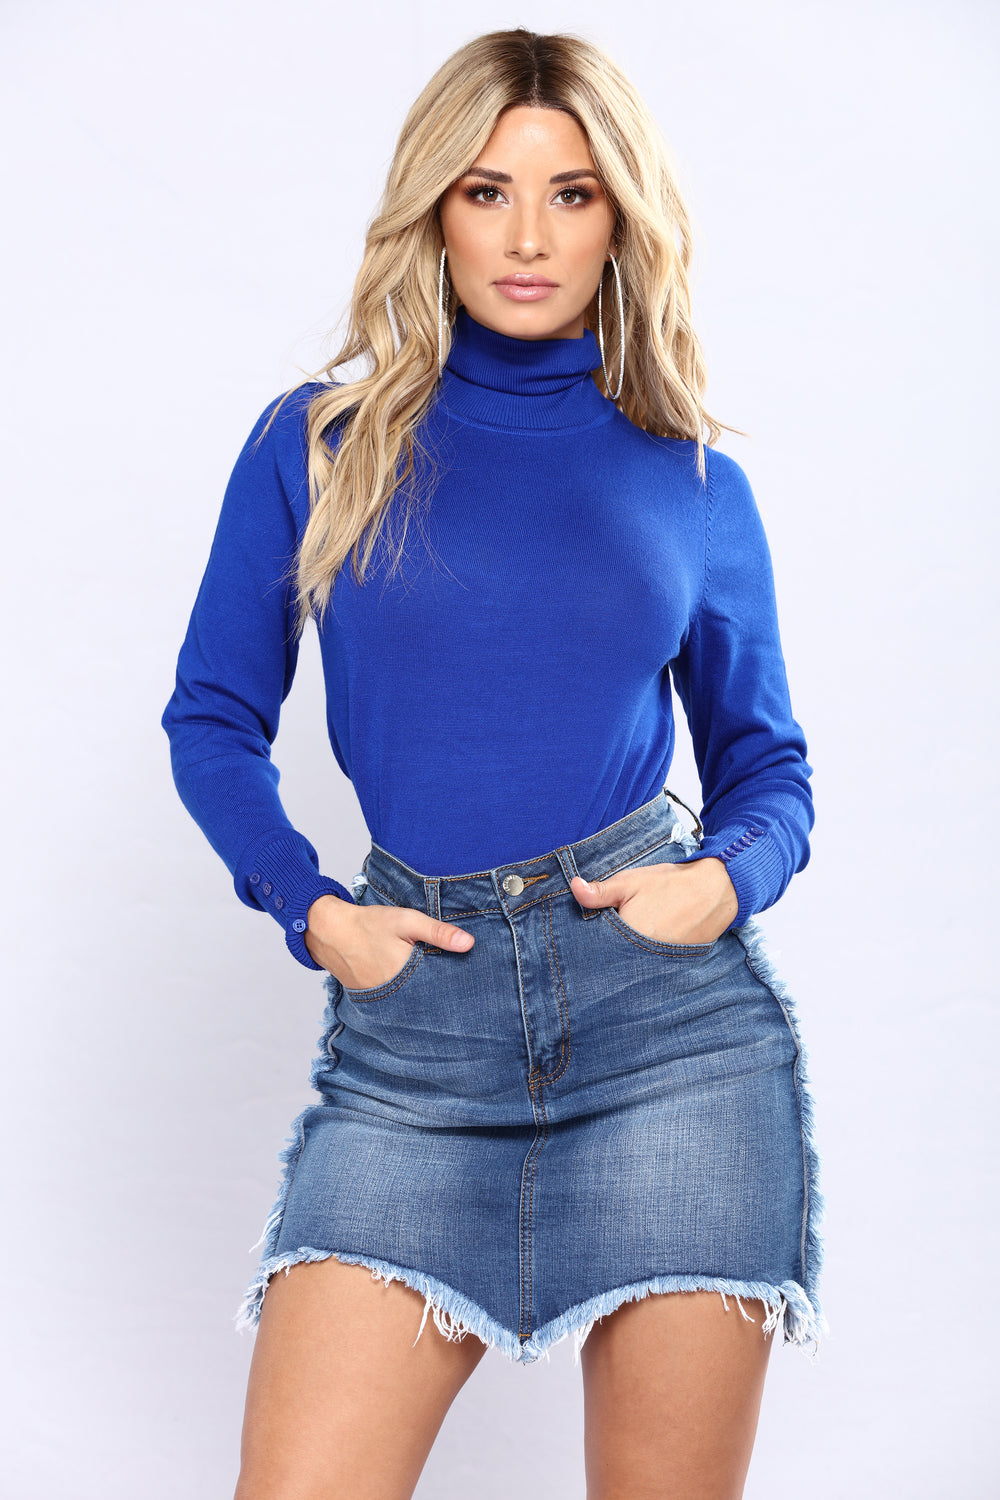 Elina Sweater Top - Royal Blue